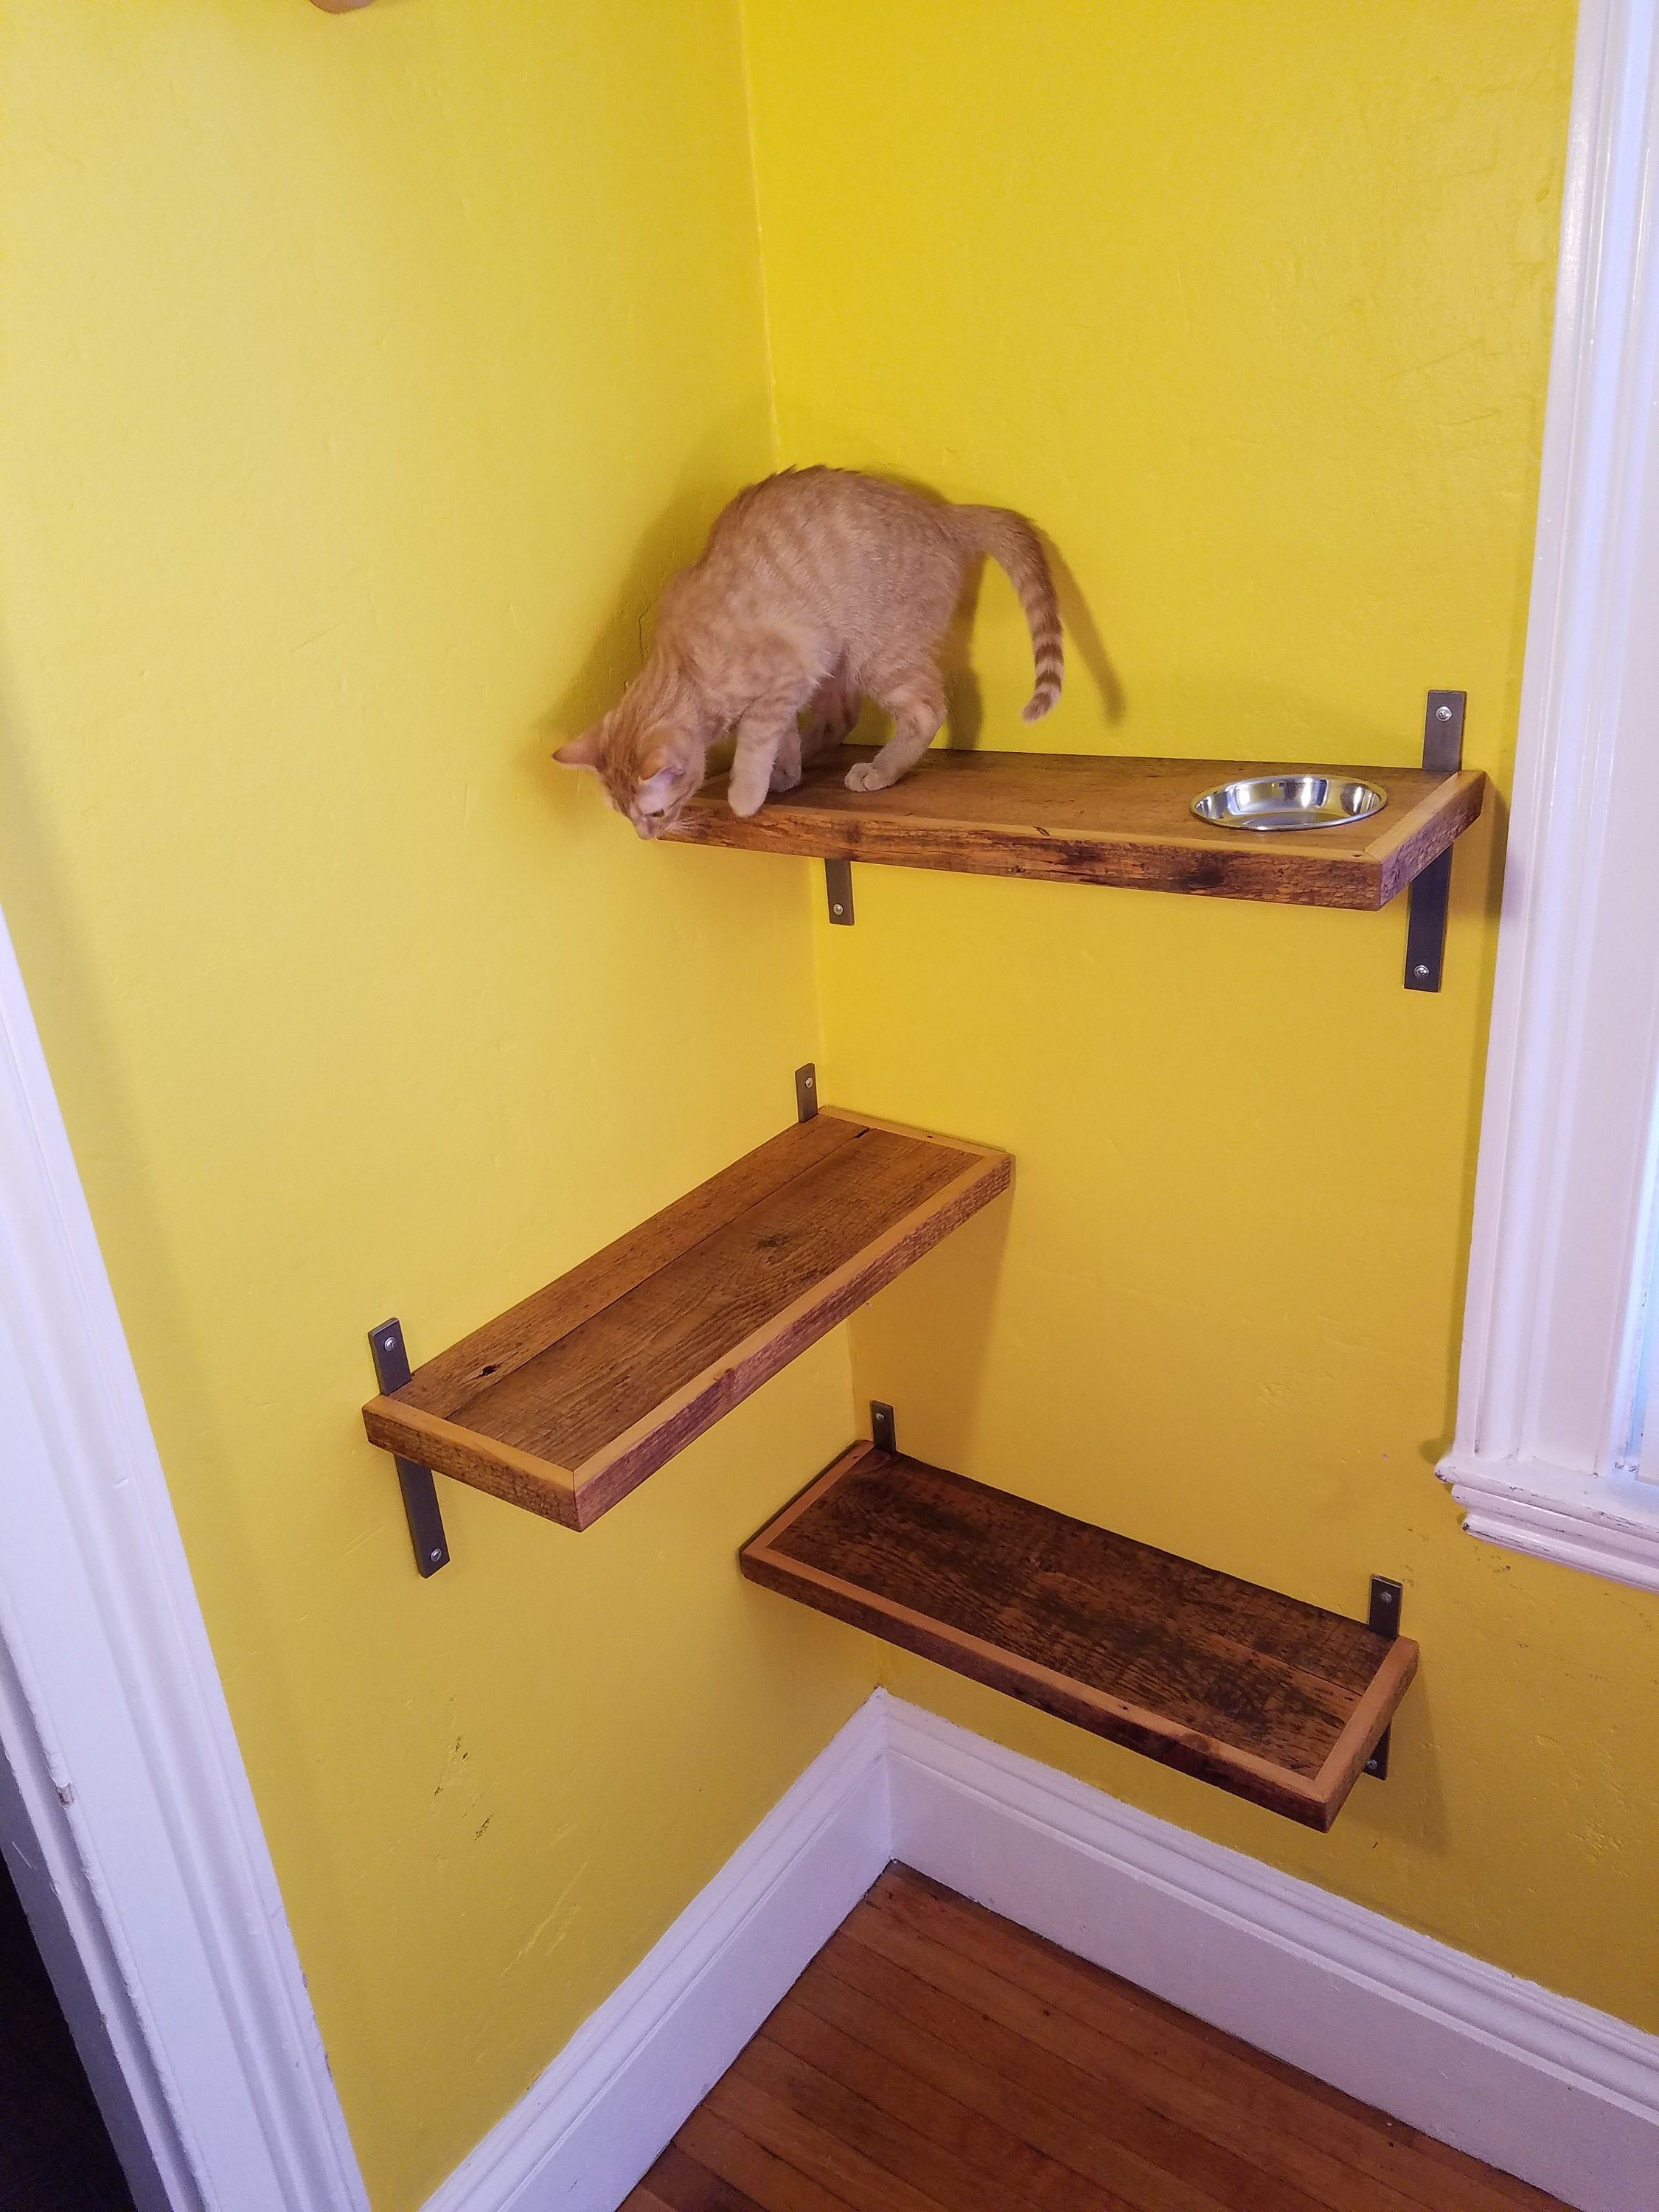 Reclaimed Wood Cat Shelf FREE SHIPPING Etsy in 2020